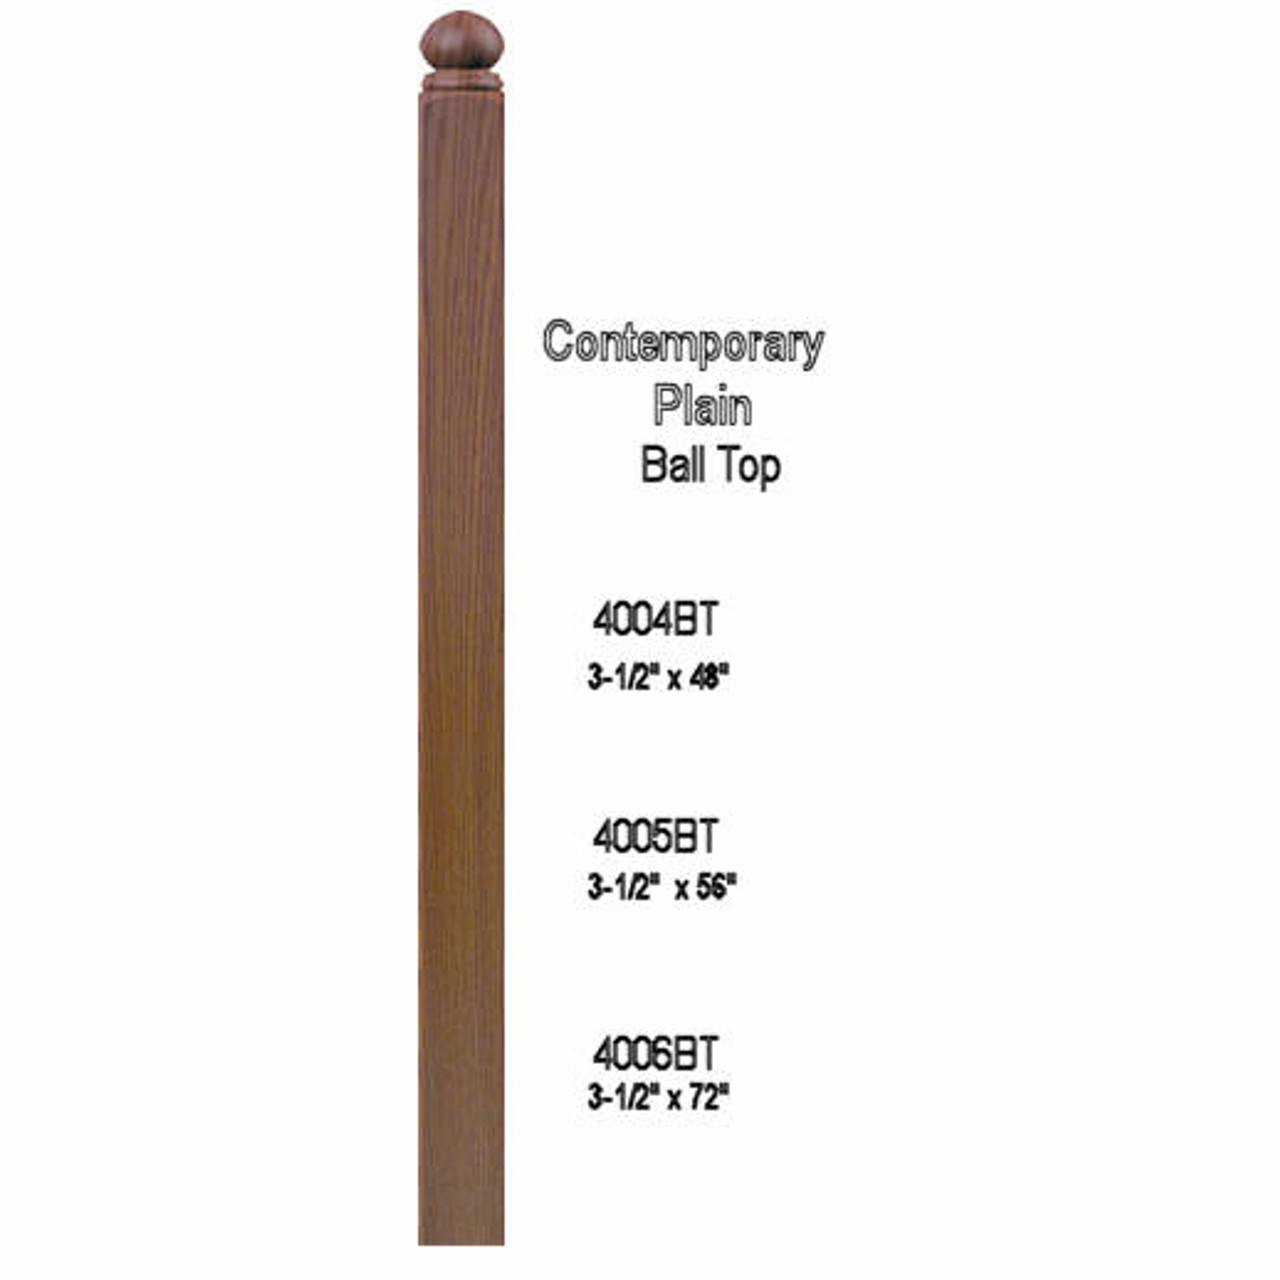 """4004BT 48"""" Ball Top S4S Newel Post Dimensional Information"""